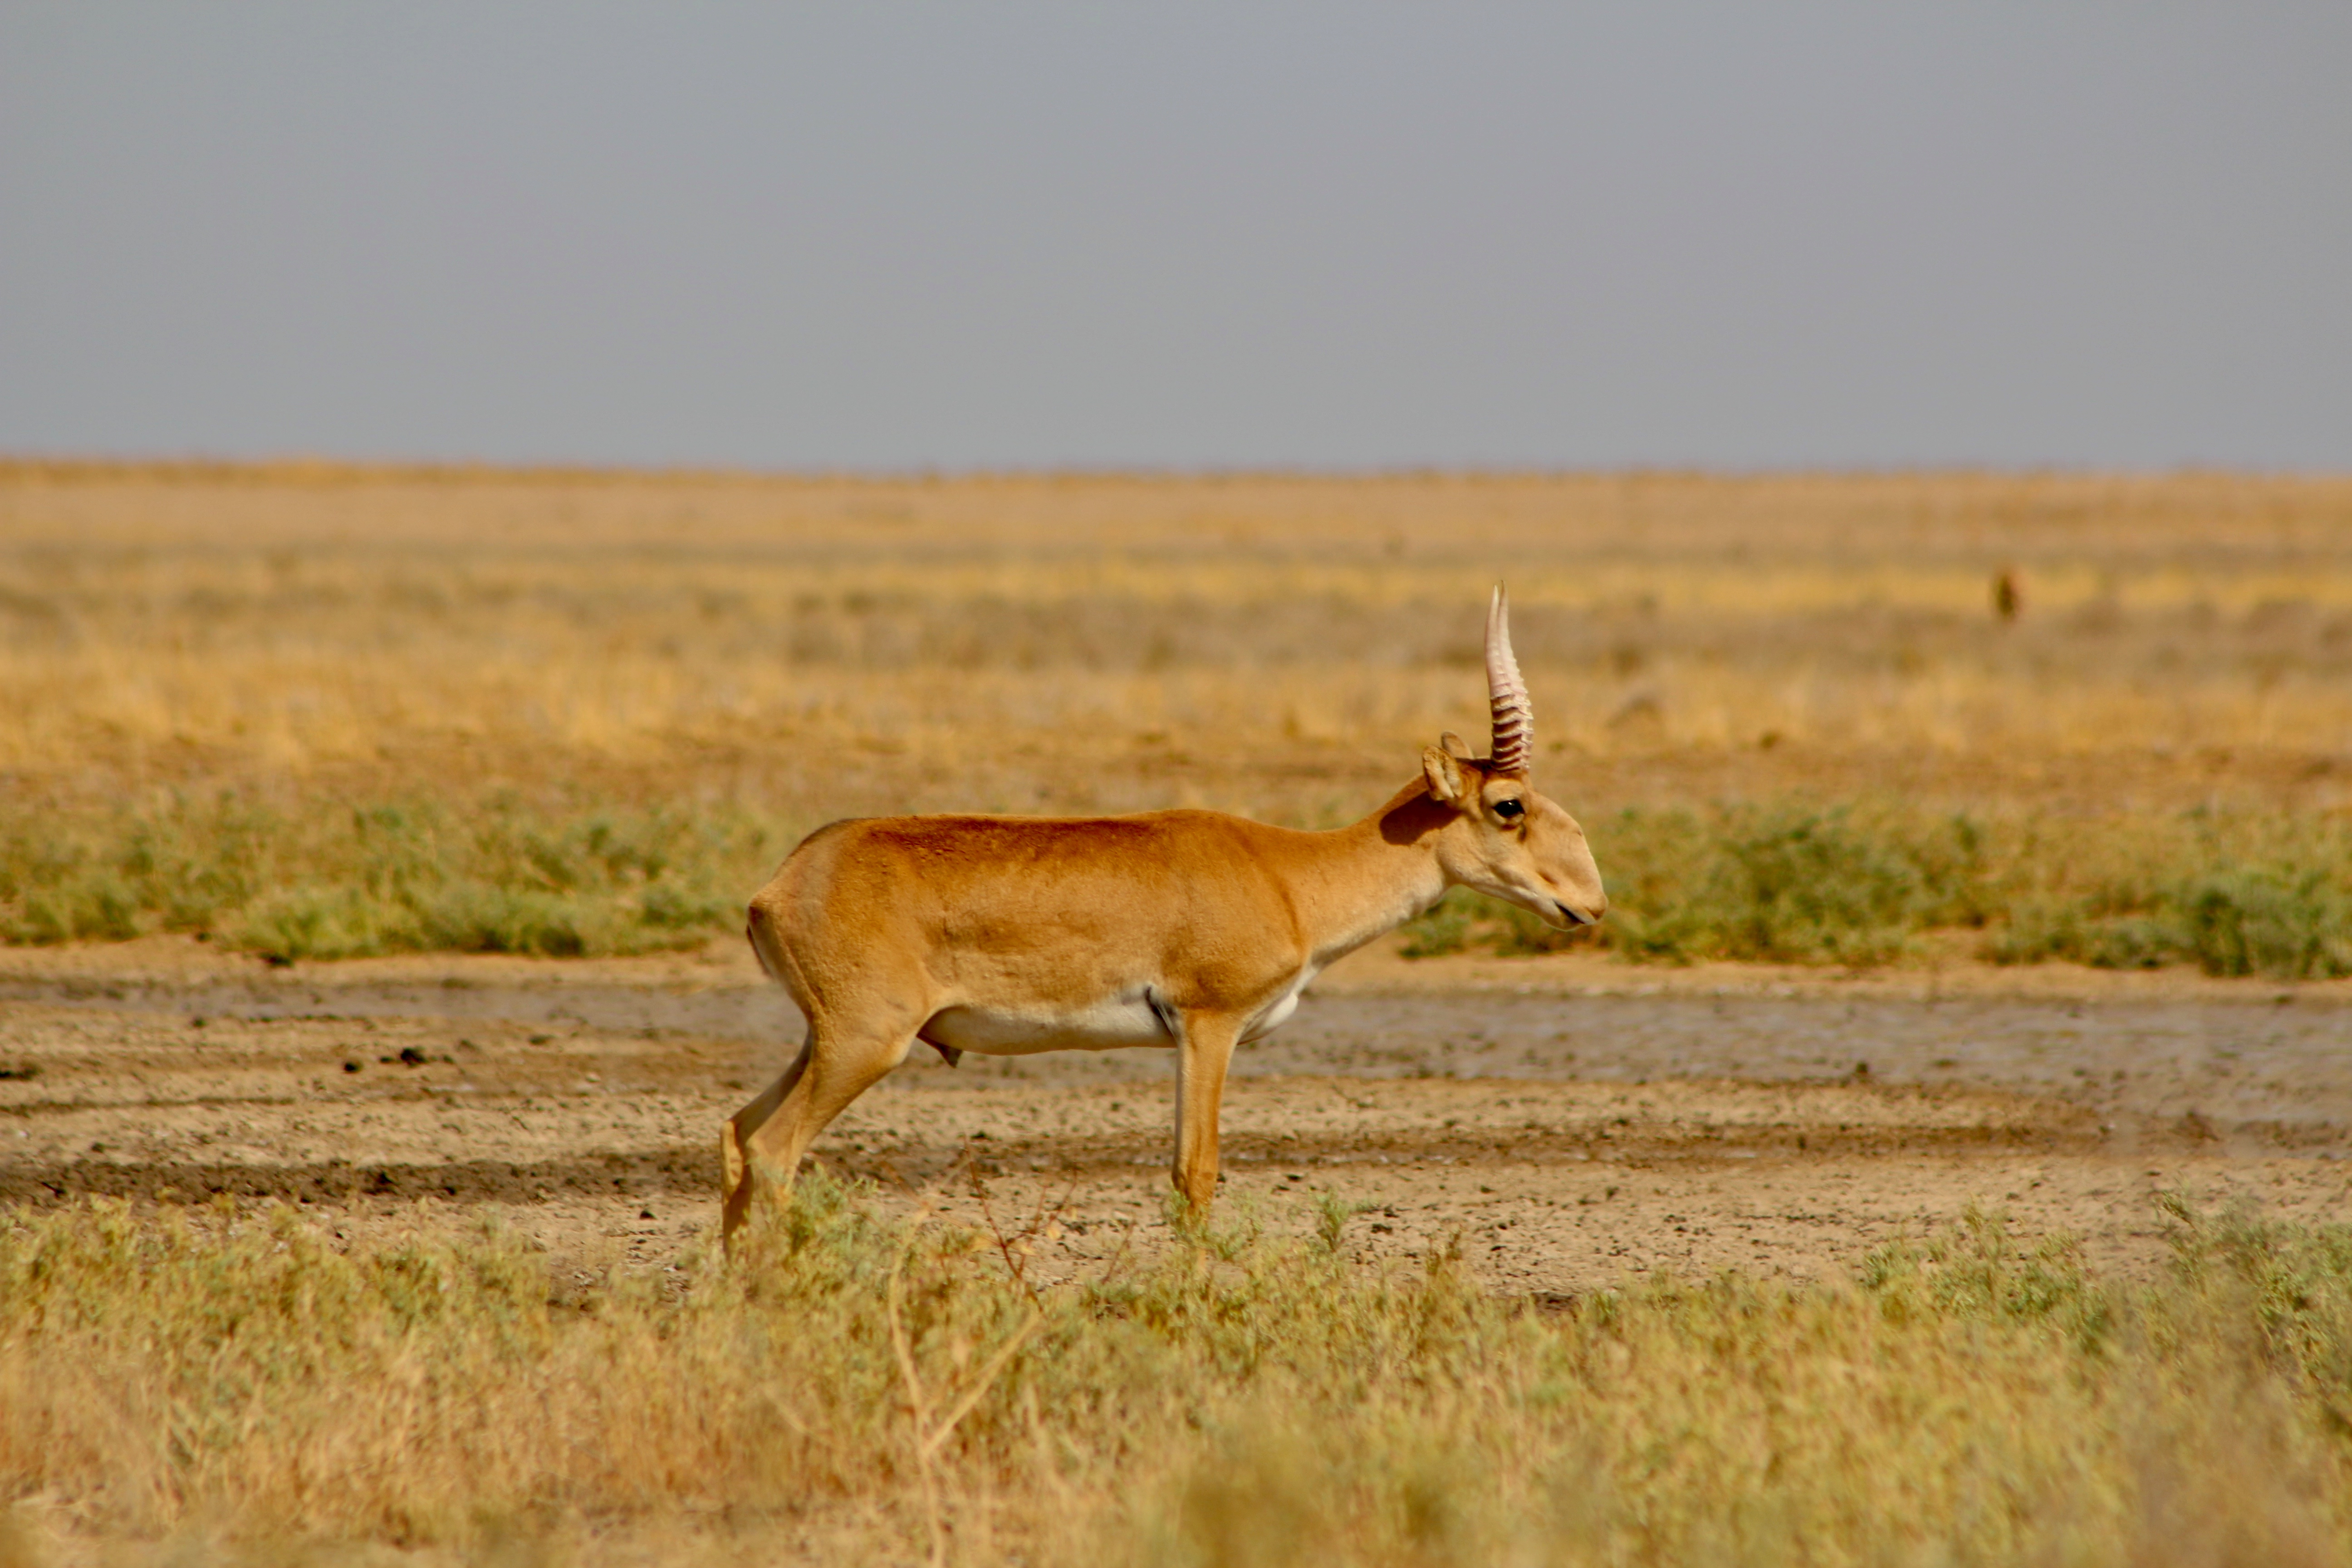 A male saiga. They are hunted heavily for their horns.